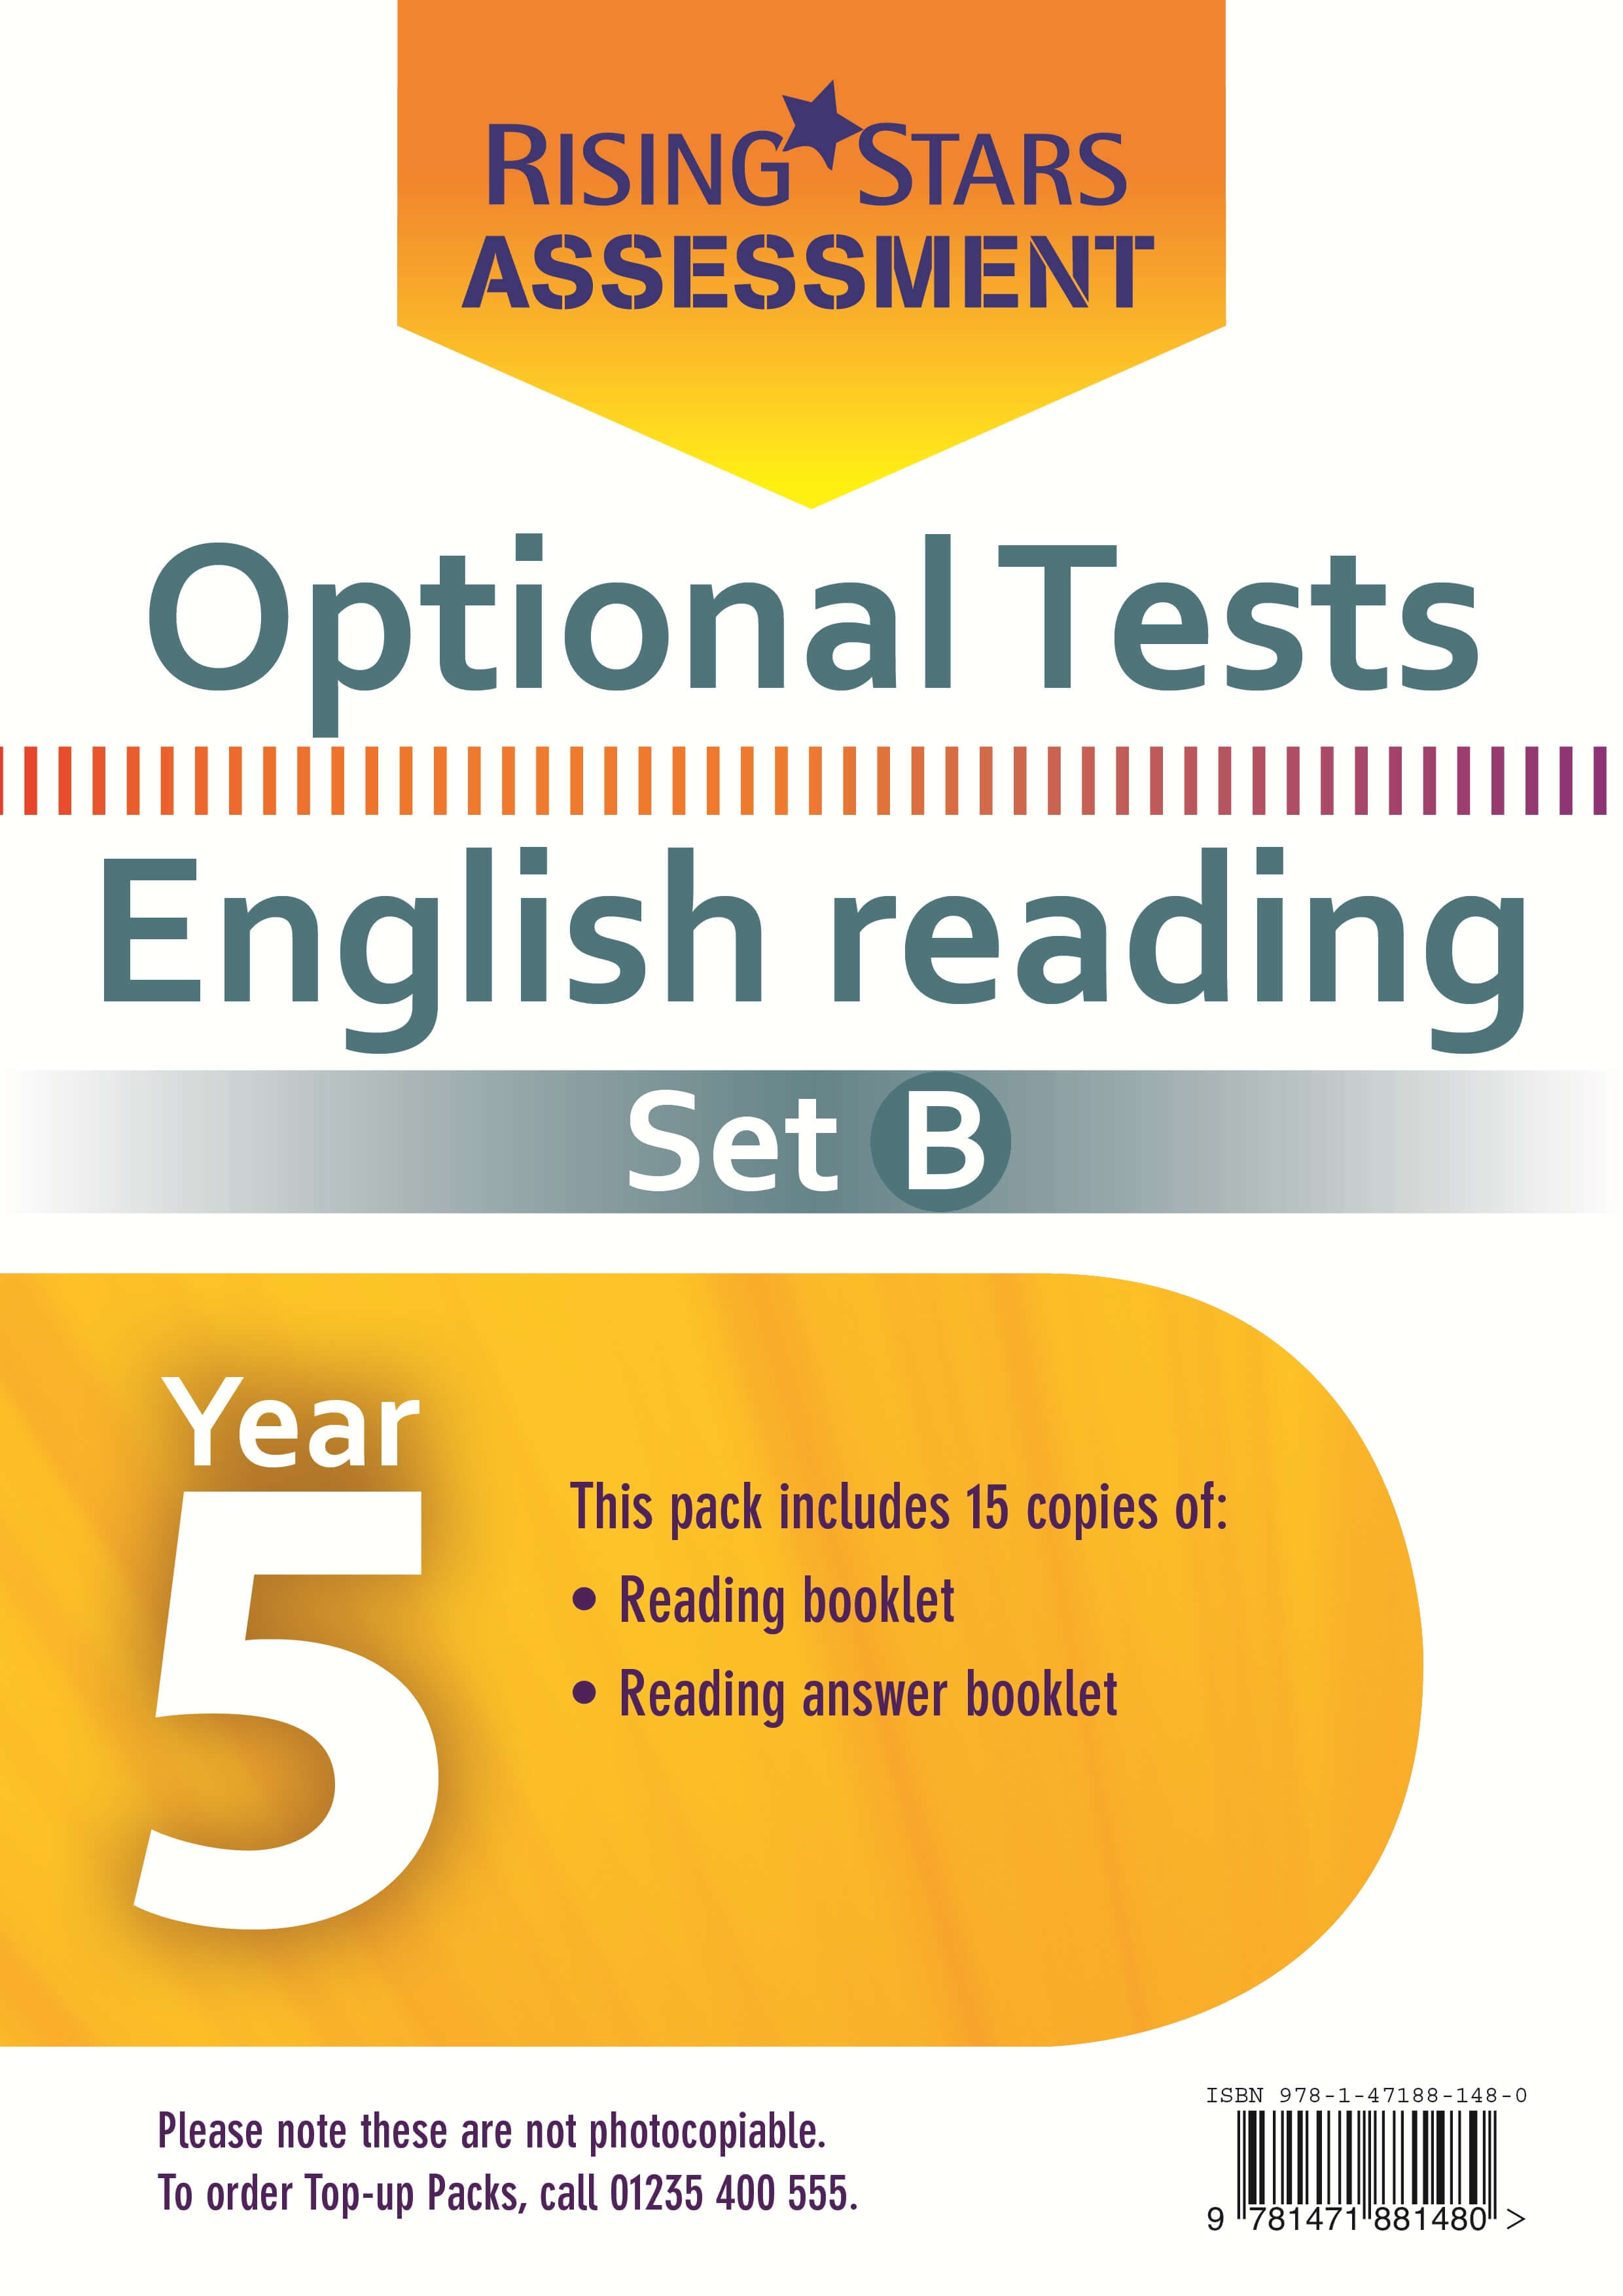 Optional Tests SET B Reading Year 5 Pupil Pack (15 copy)